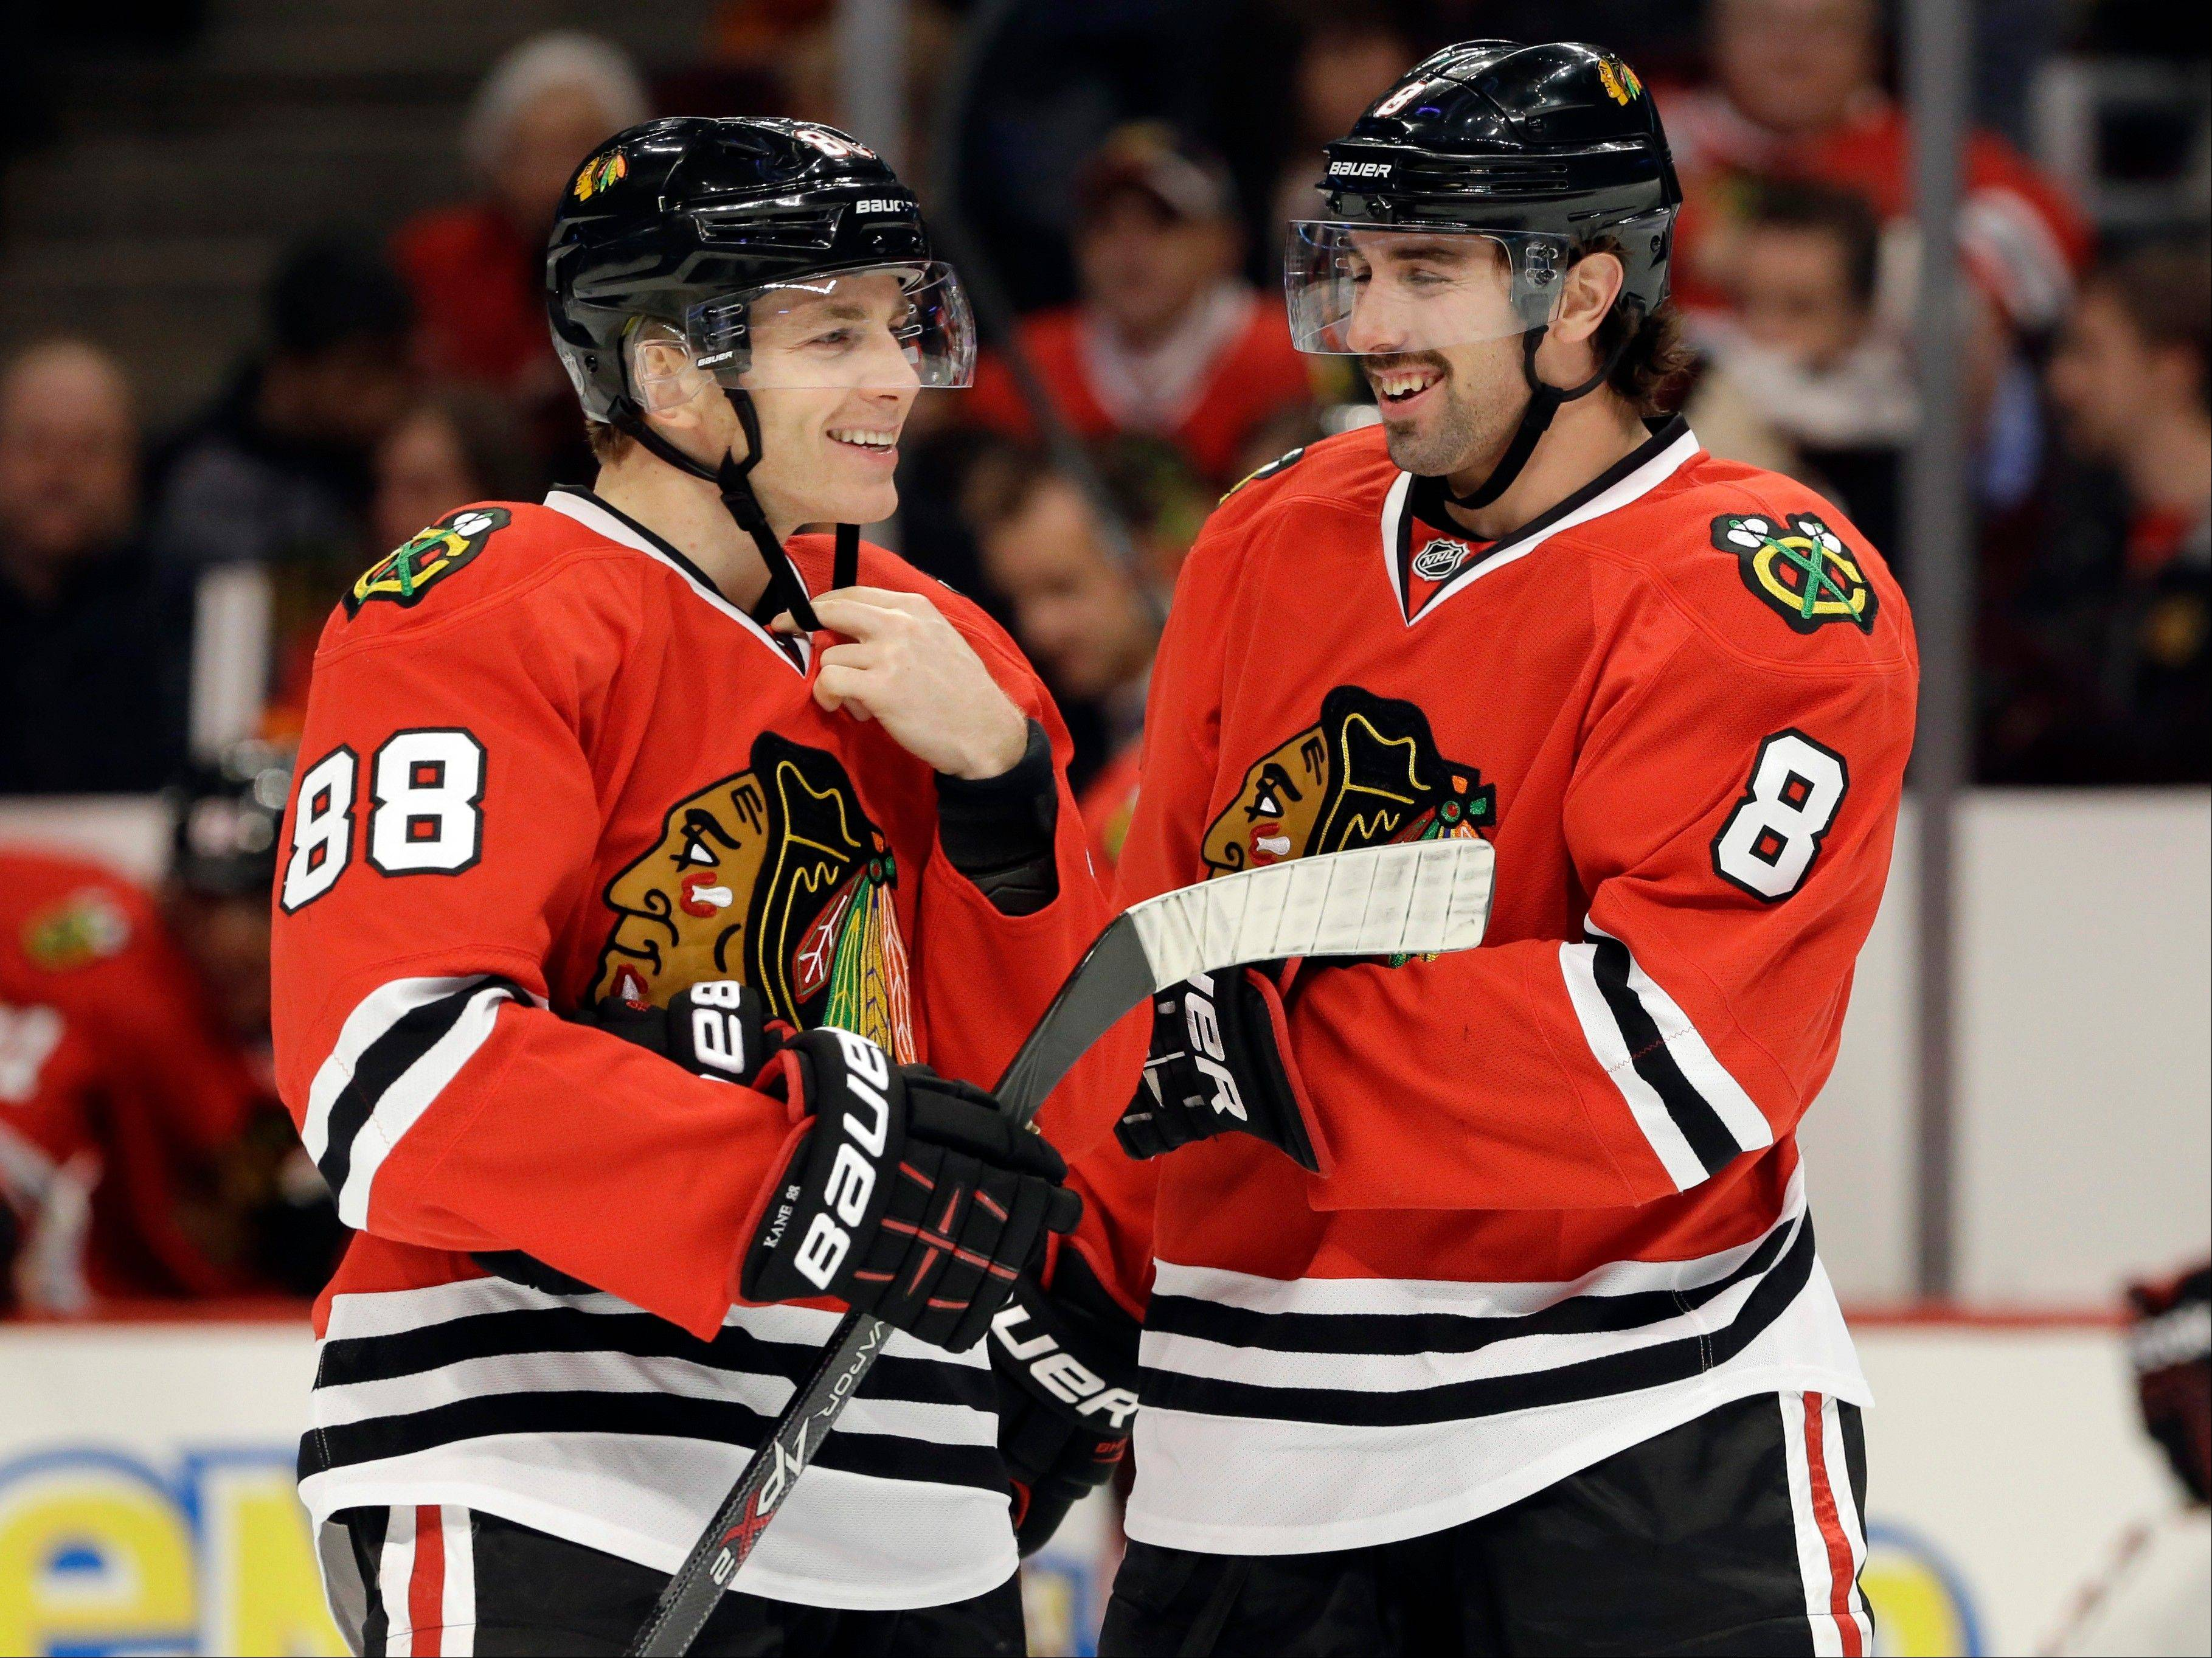 Patrick Kane, left, smiles as he talks with Nick Leddy (8) during a game against Phoenix on Nov. 14. Kane has taken his game to another level this season and has a legitimate chance to lead the league in scoring.